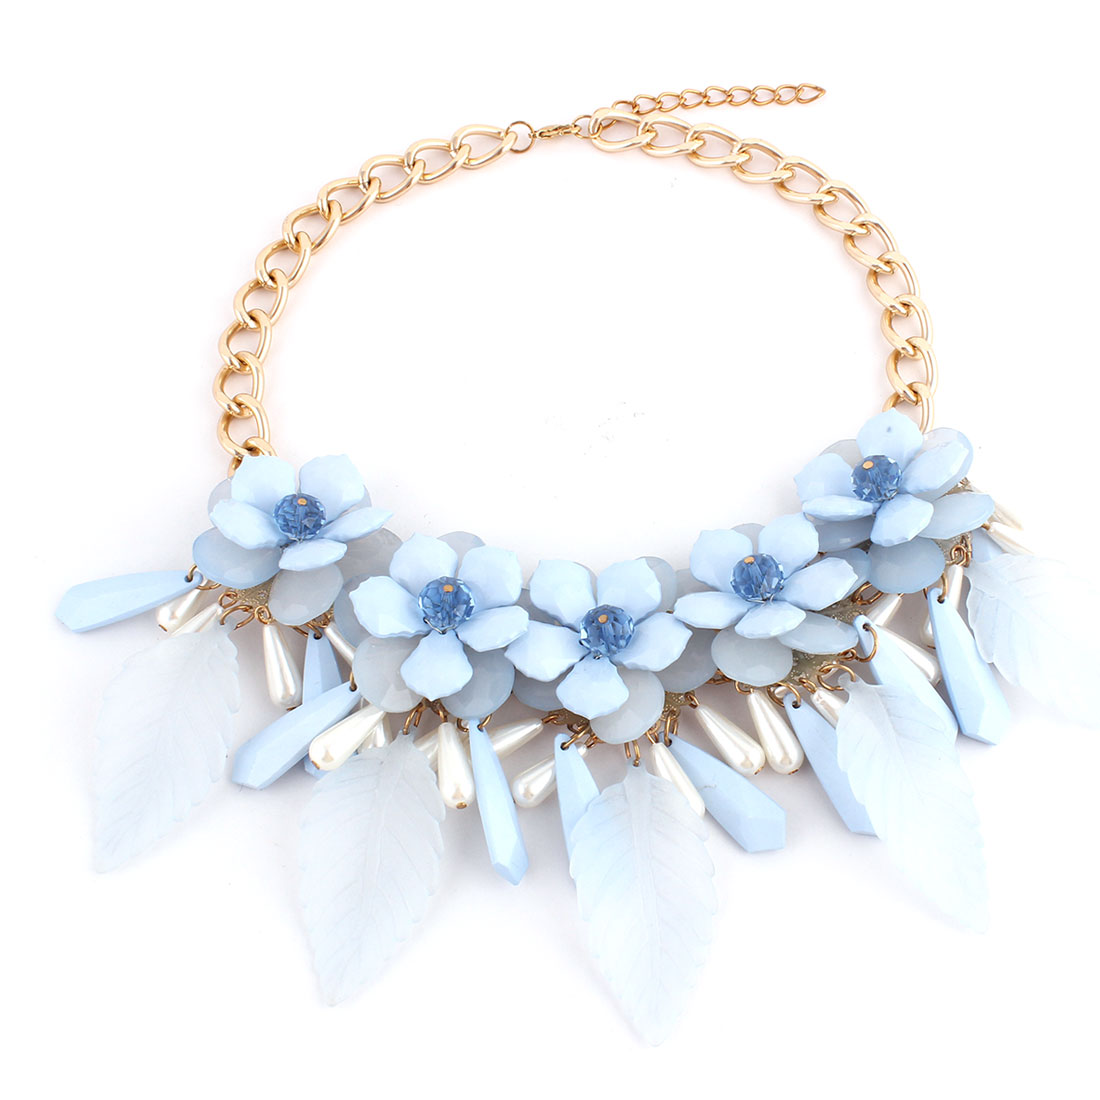 Plastic Flower Leaves Pendant Metal Lobster Buckle Chain Necklace Clothes Decor